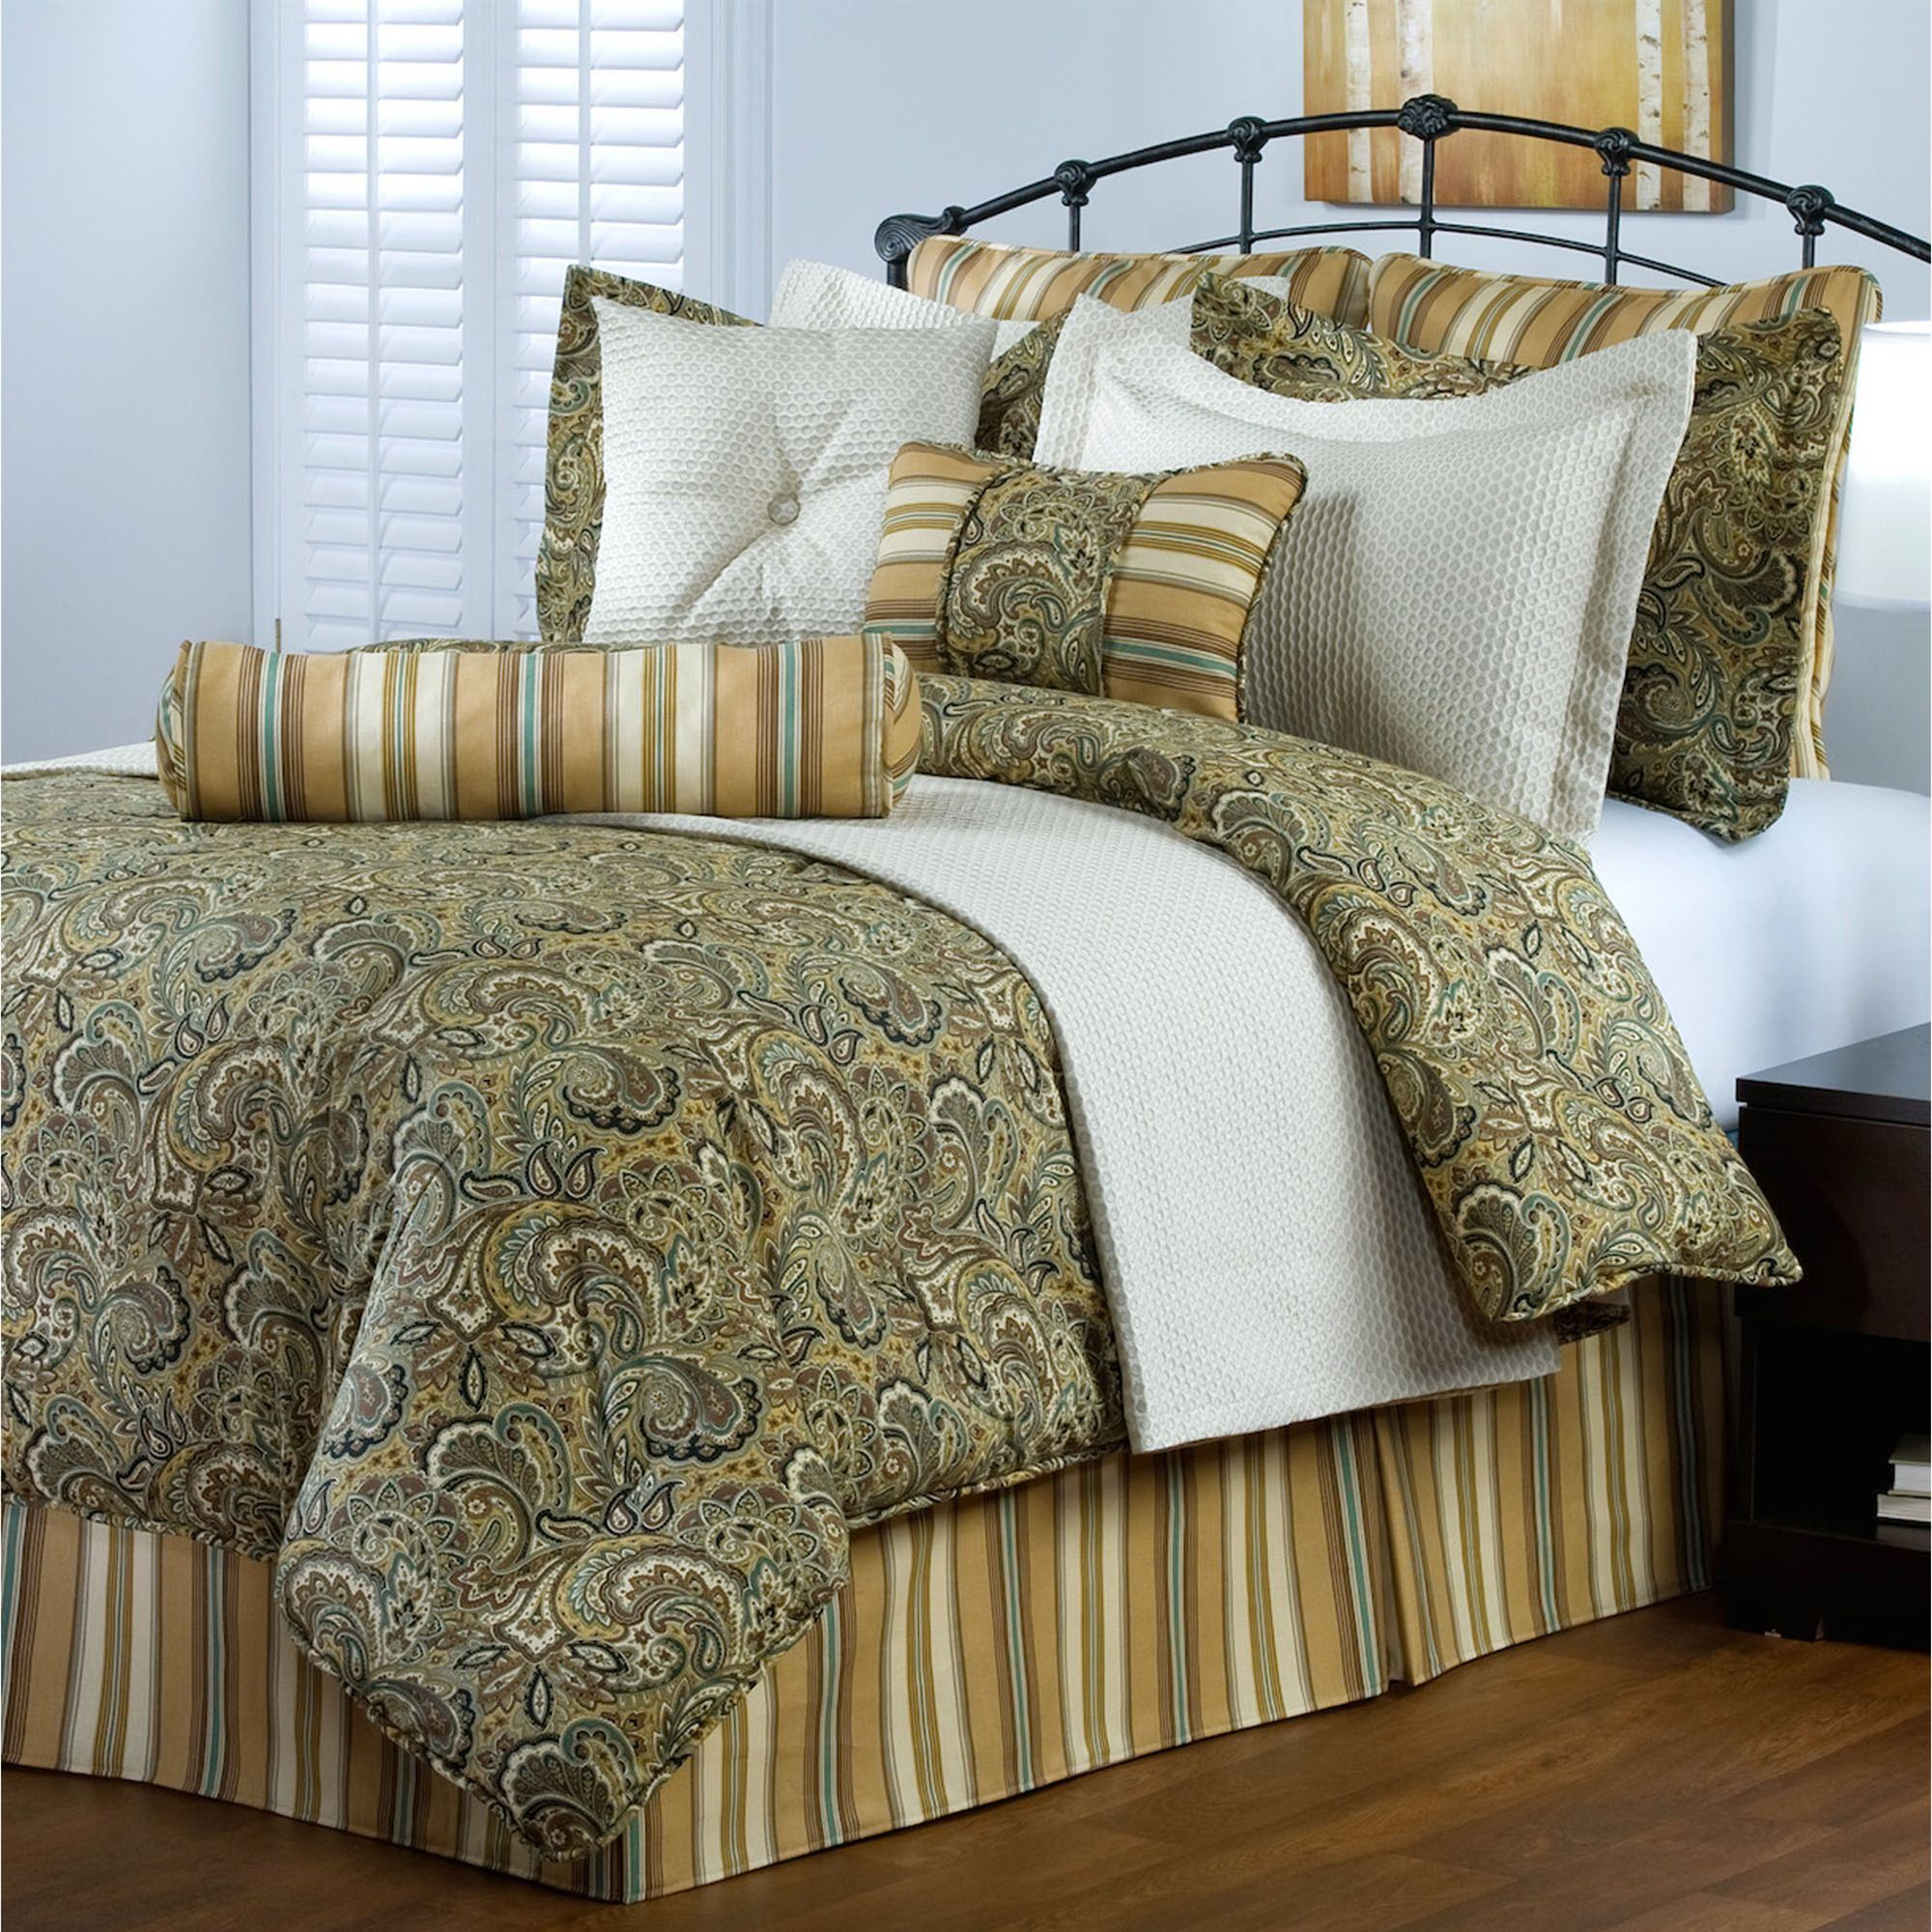 bedding quilts designs quilt ma ogee paisley